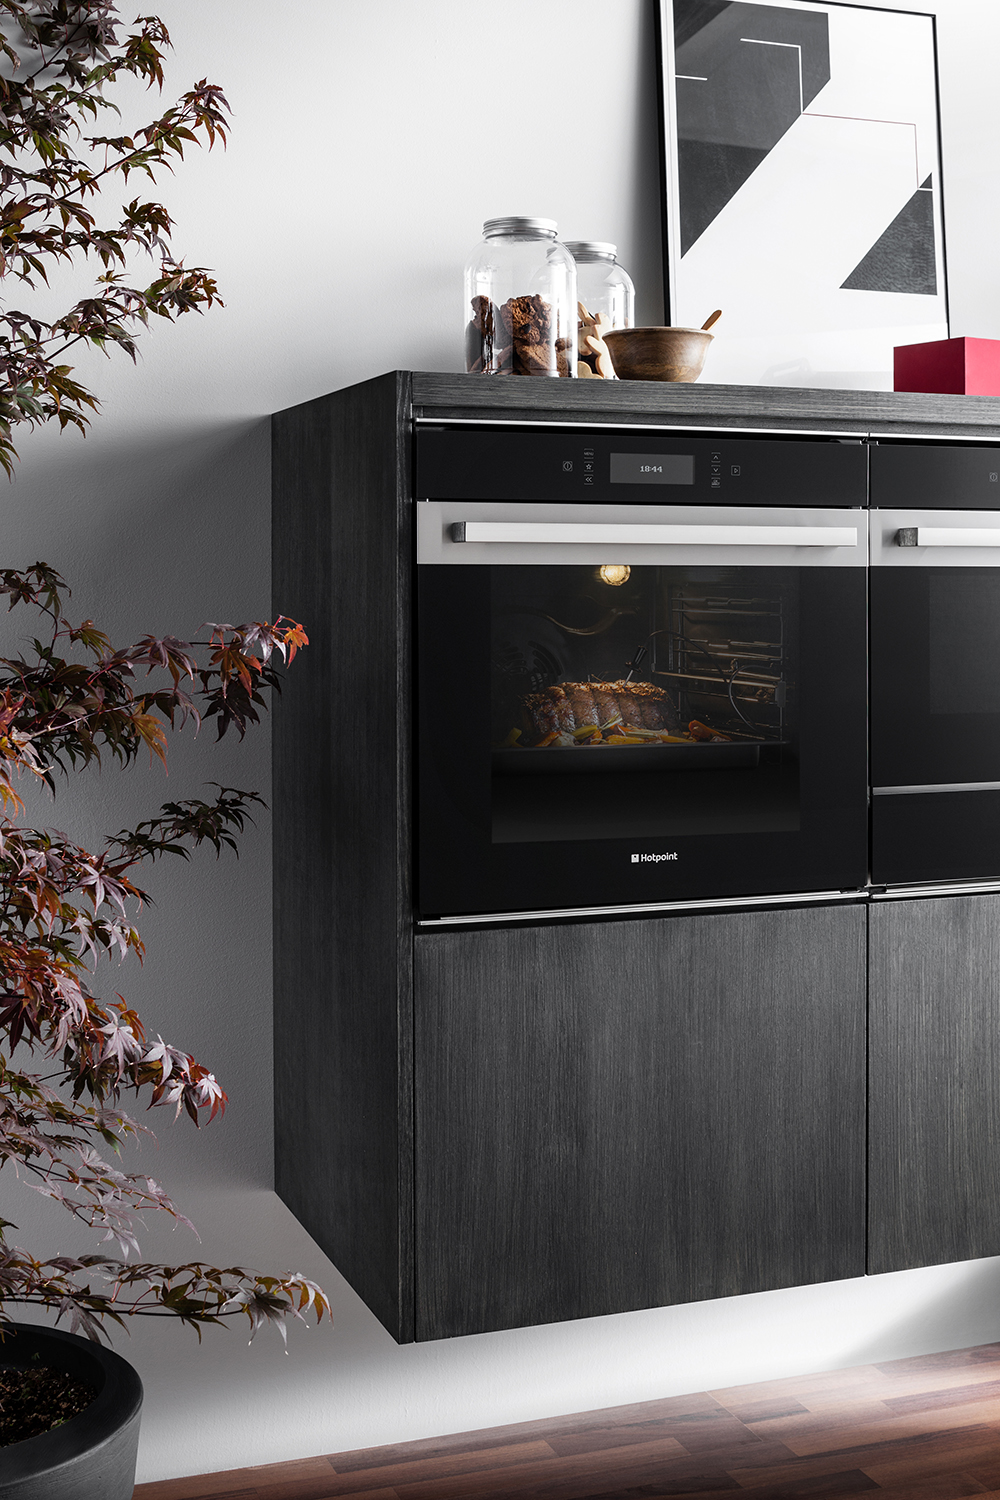 Hotpoint Class 9 SI9891SCIX single oven